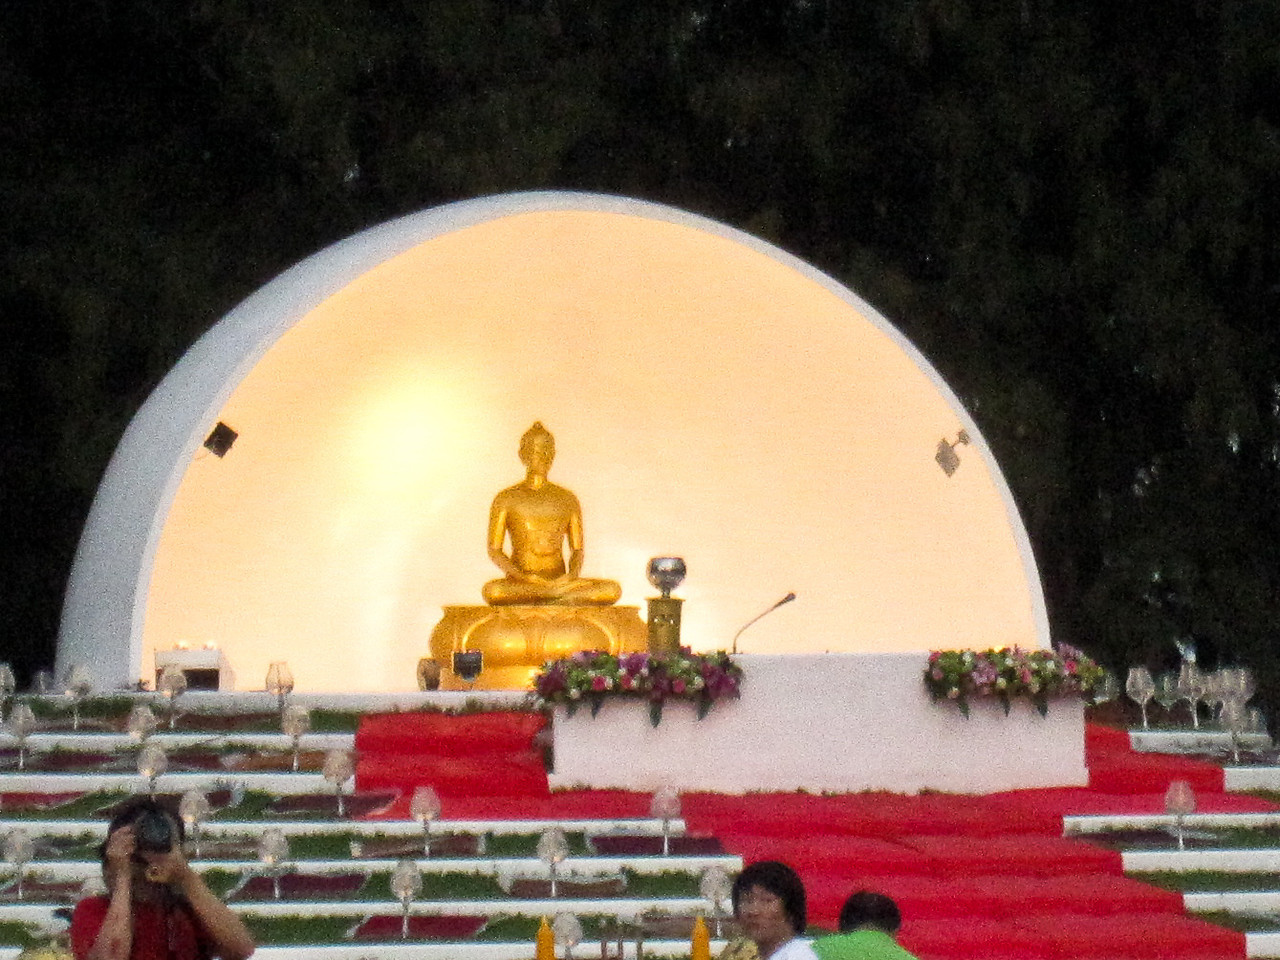 Buddha sits at the front of the temple grounds during Loy Krathong in Chiang Mai, Thailand